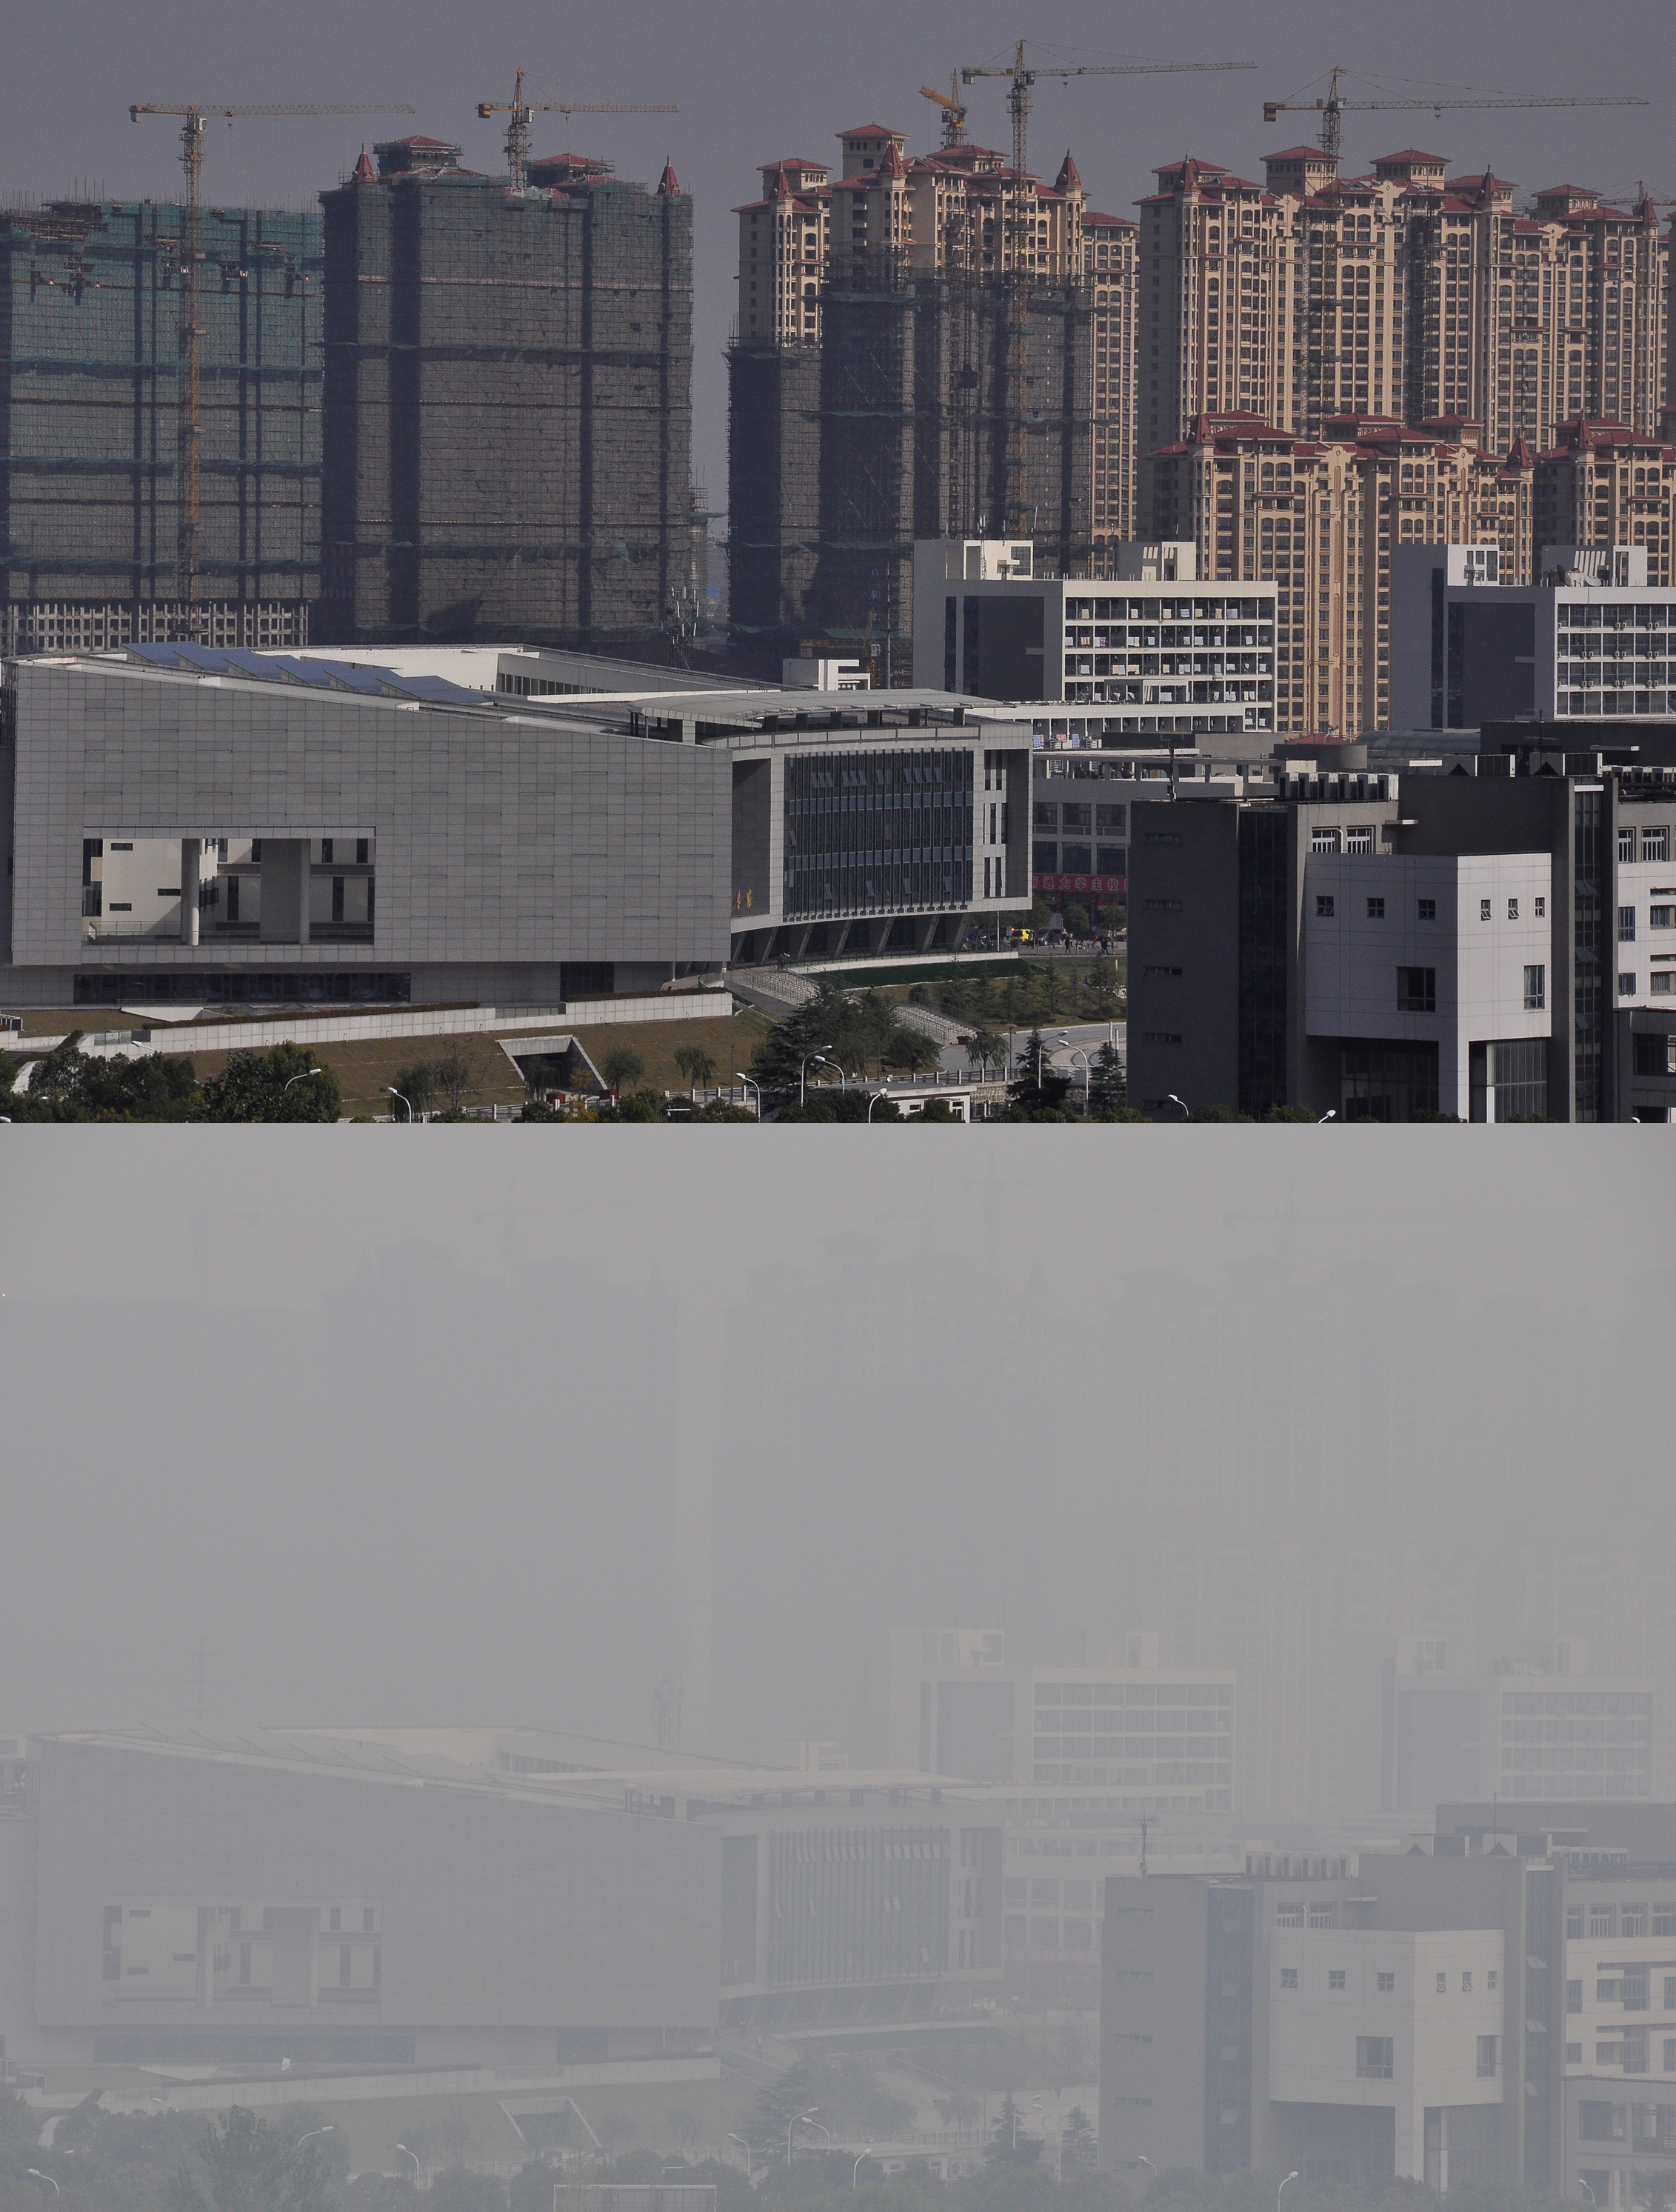 pollution nantong combo 1.jpg